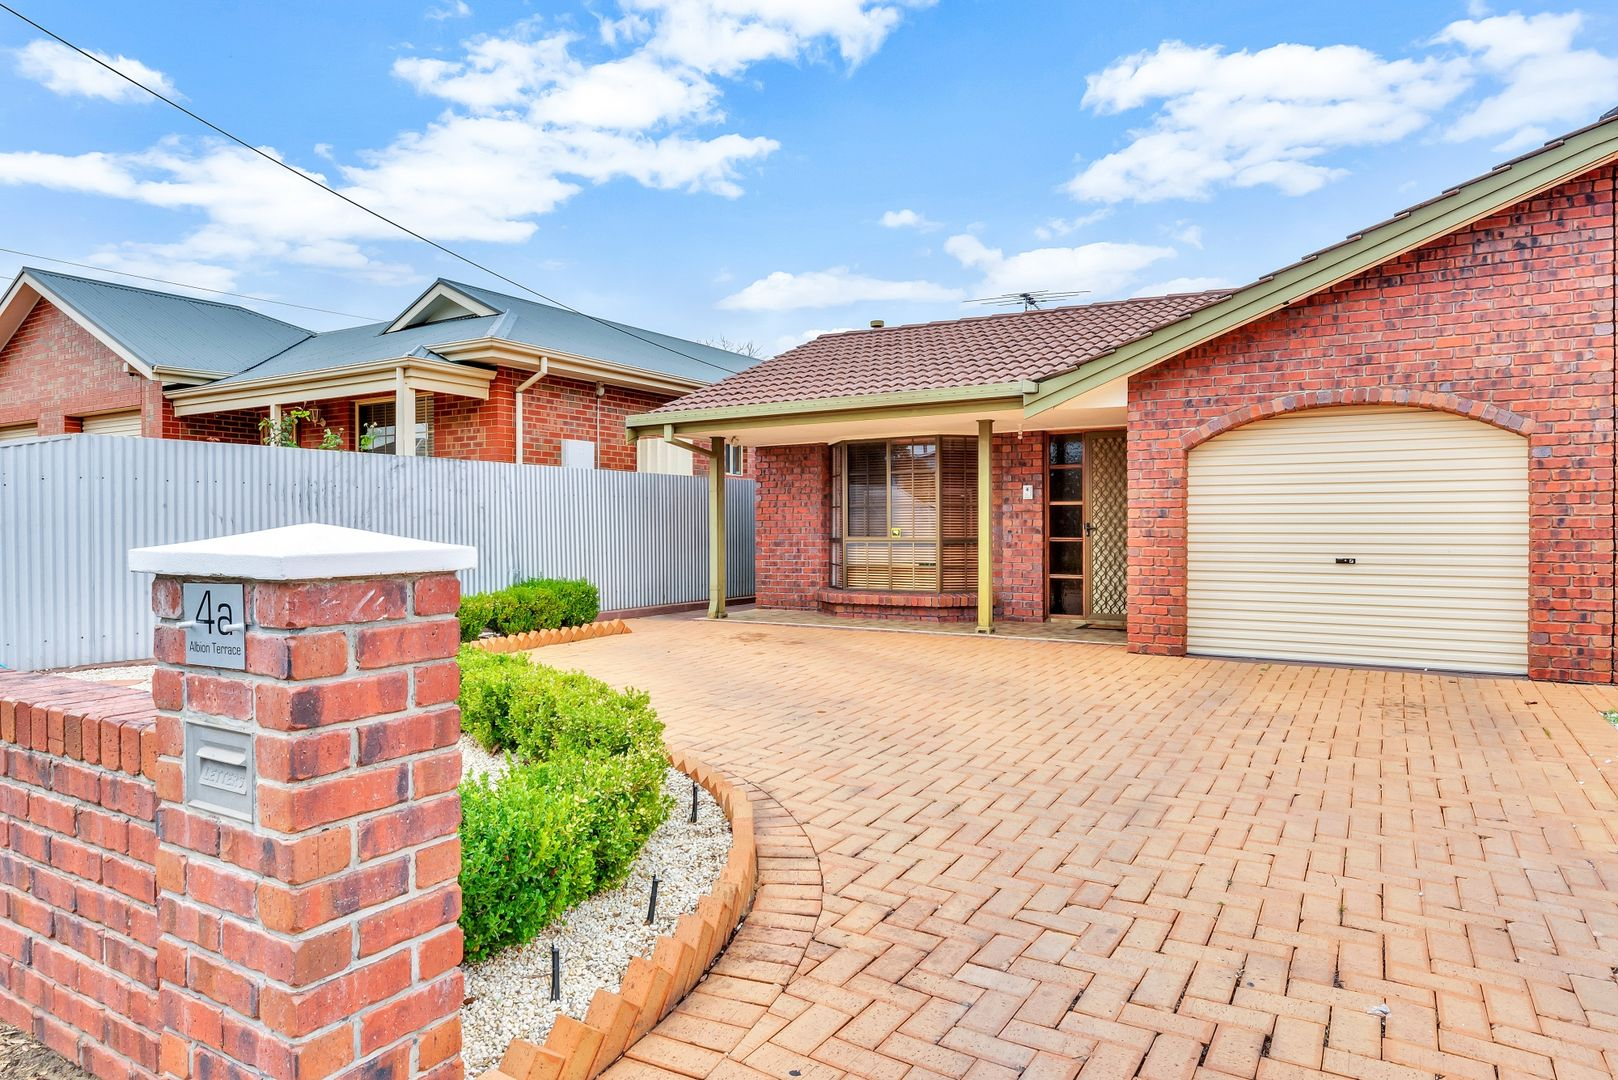 4A Albion Tce, Campbelltown SA 5074, Image 0